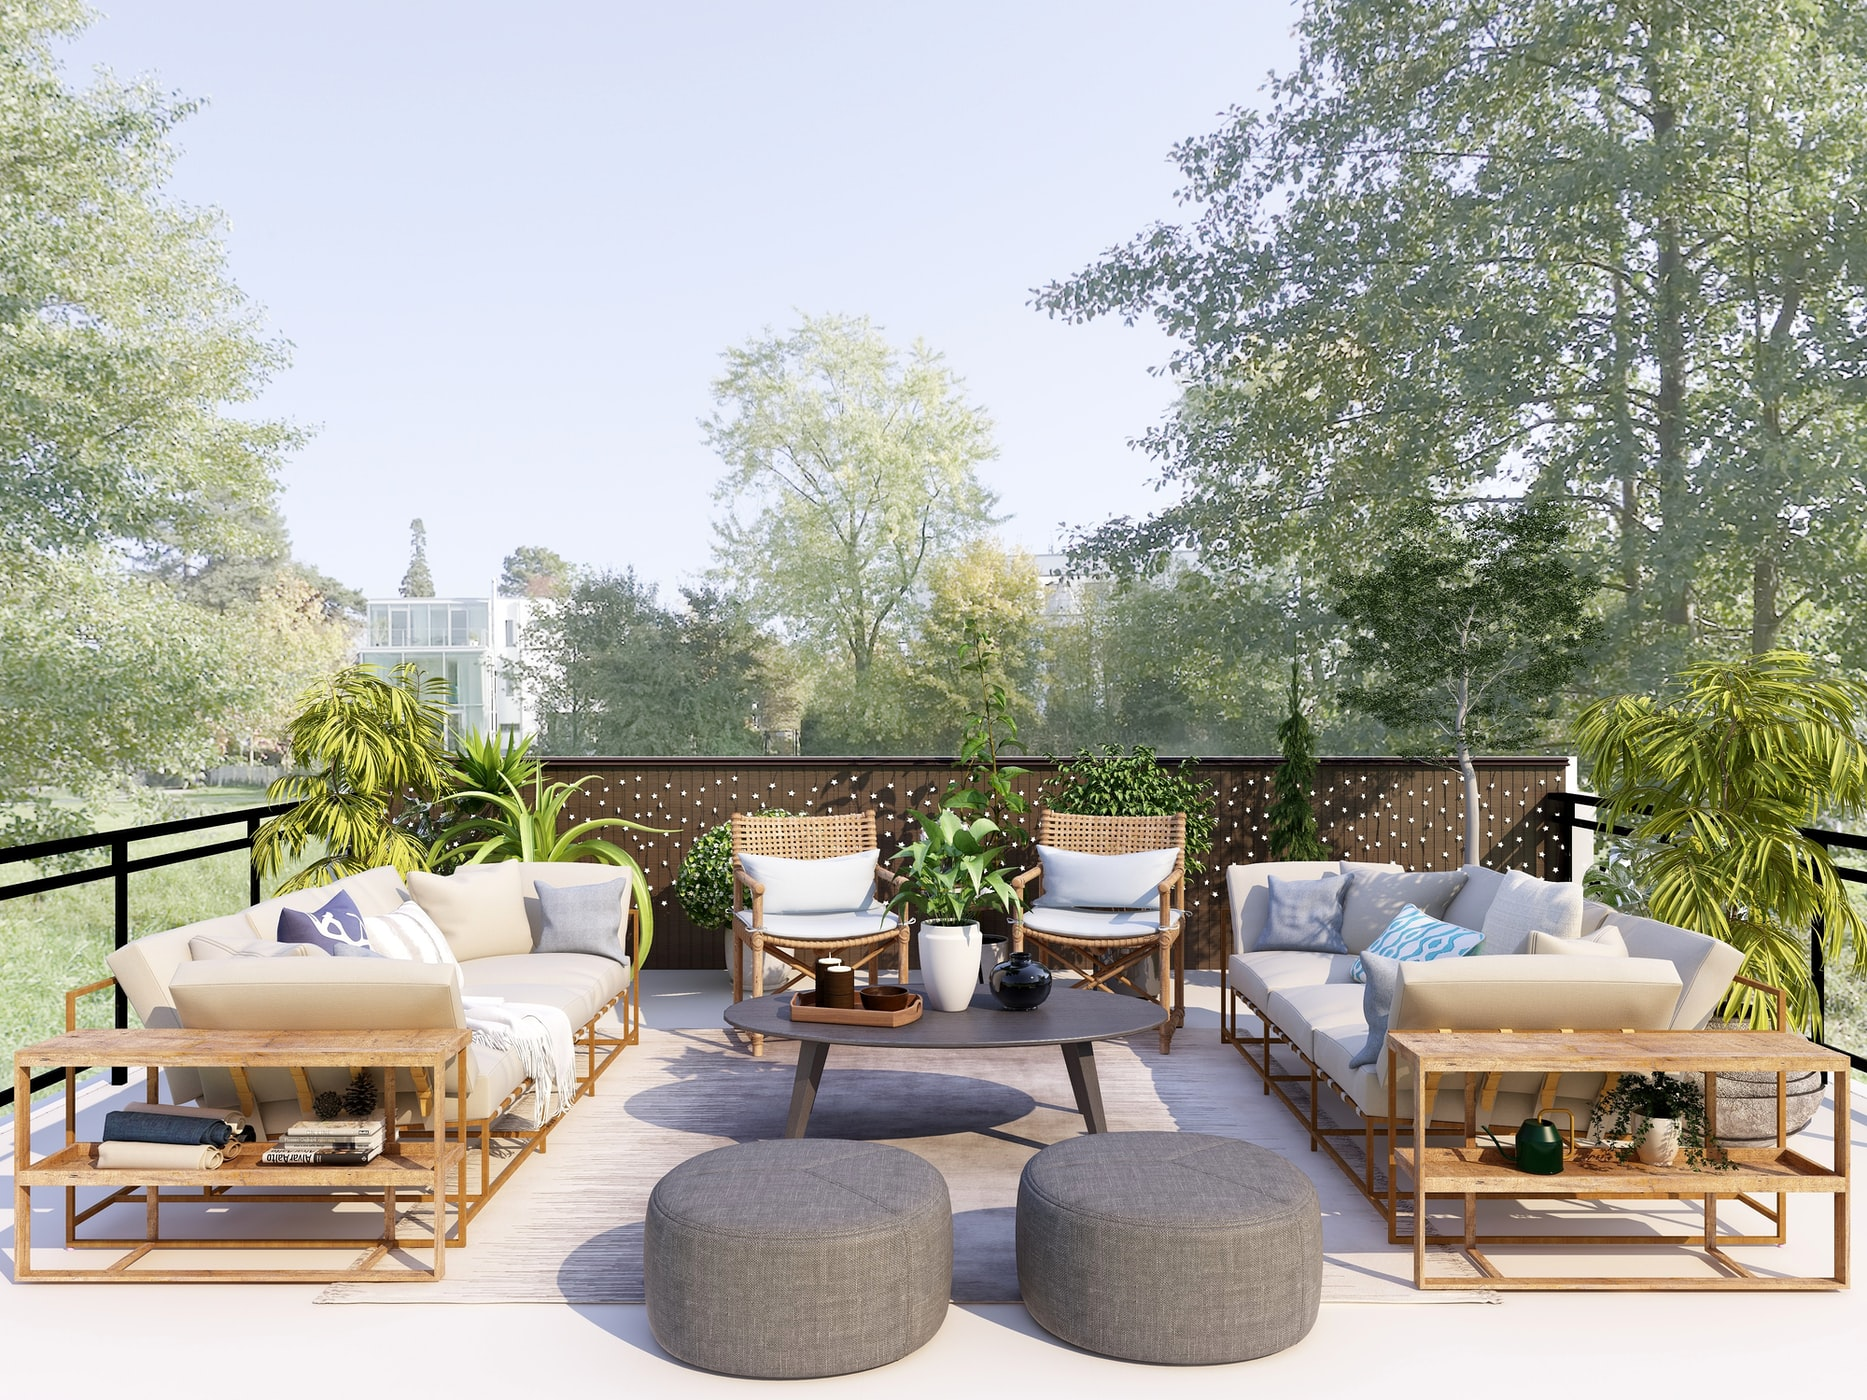 Rustic and classy outdoor furniture overlooking trees and greenery